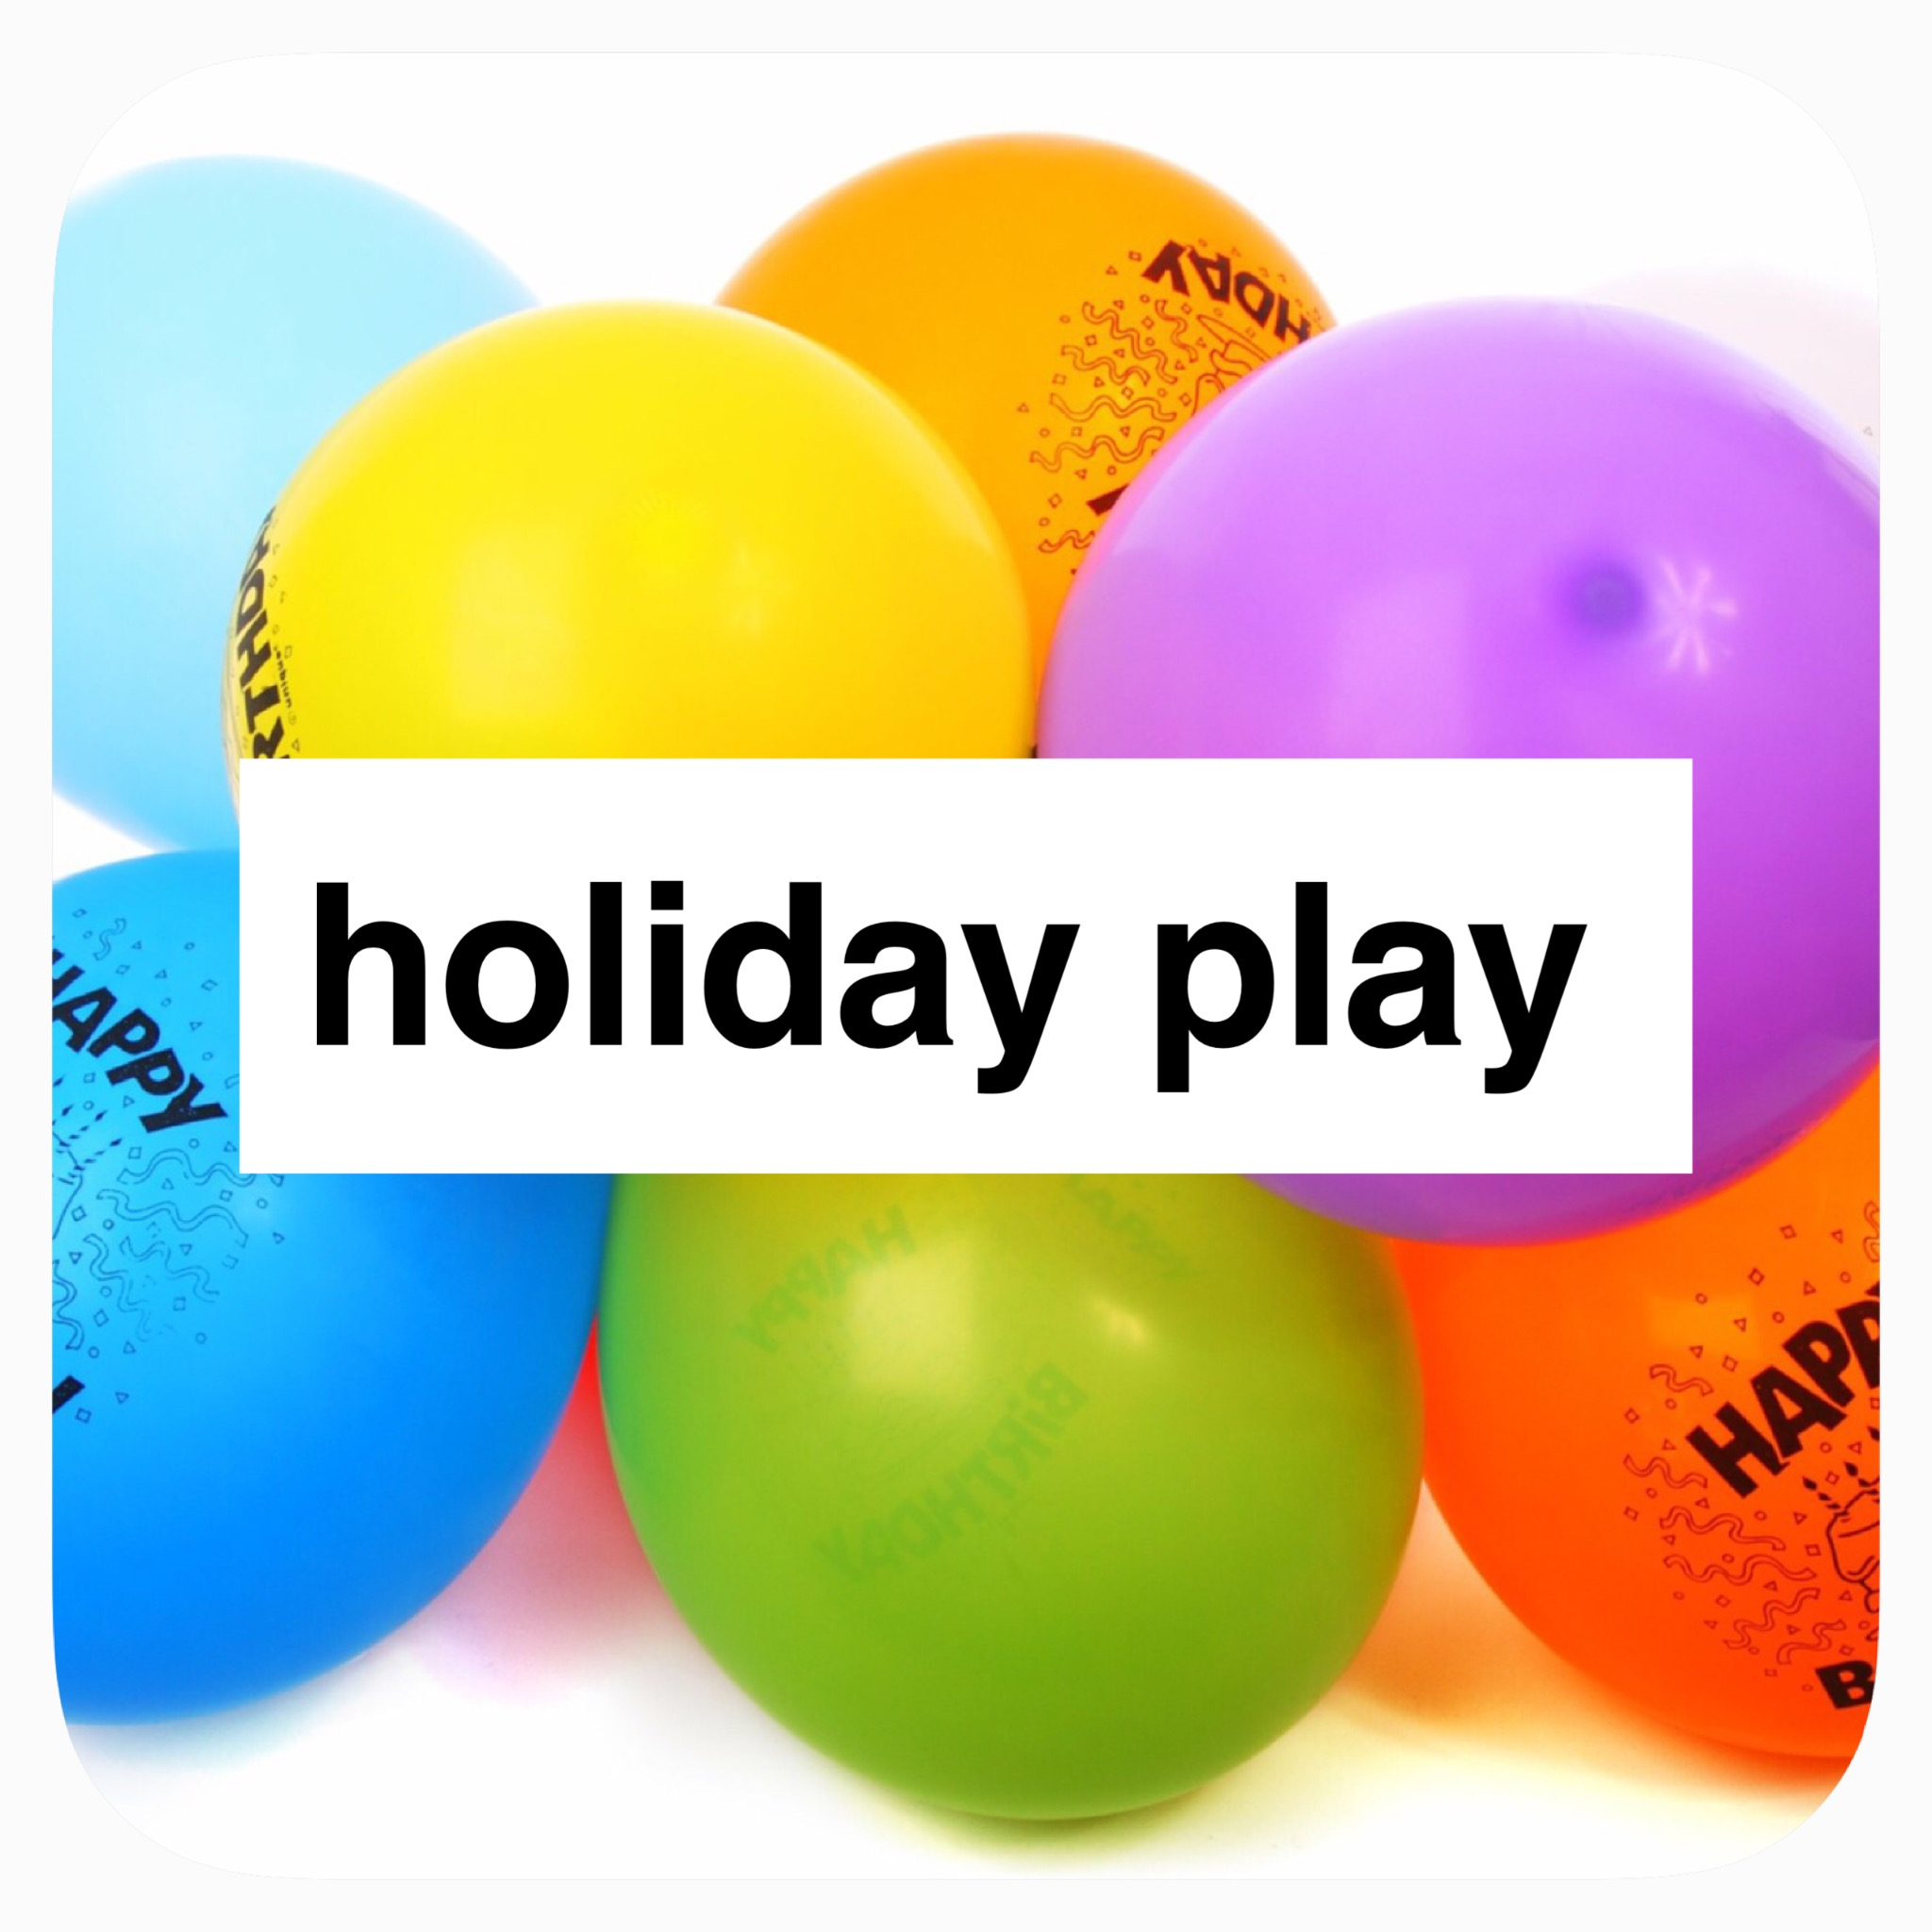 Holiday play ideas from @how2playtoday